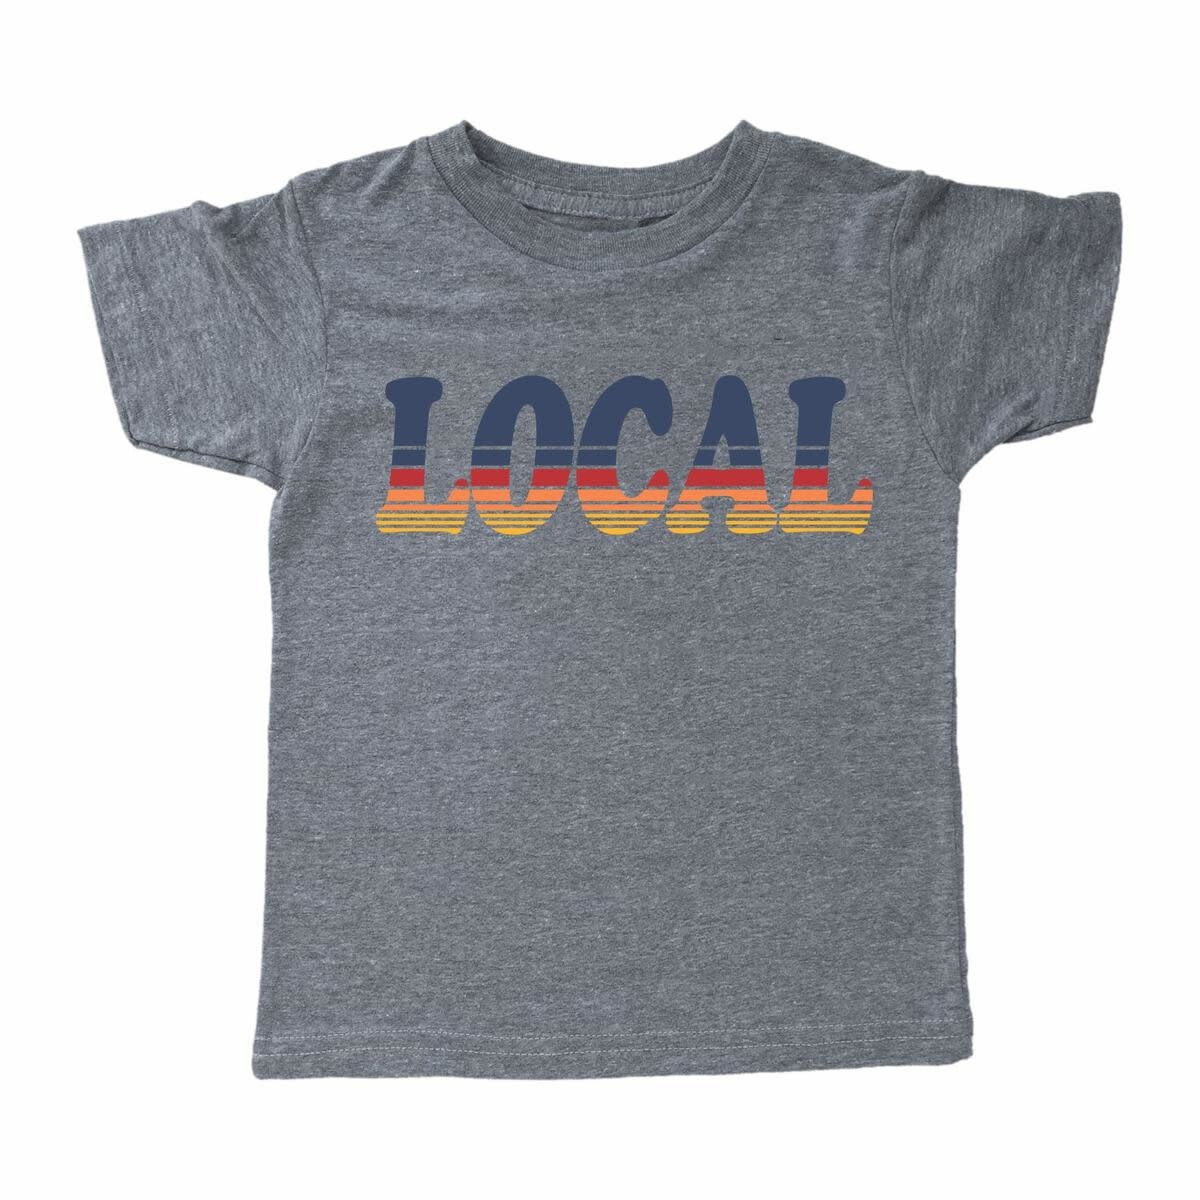 Tiny Whales Local Baby Tee - Tri Gray